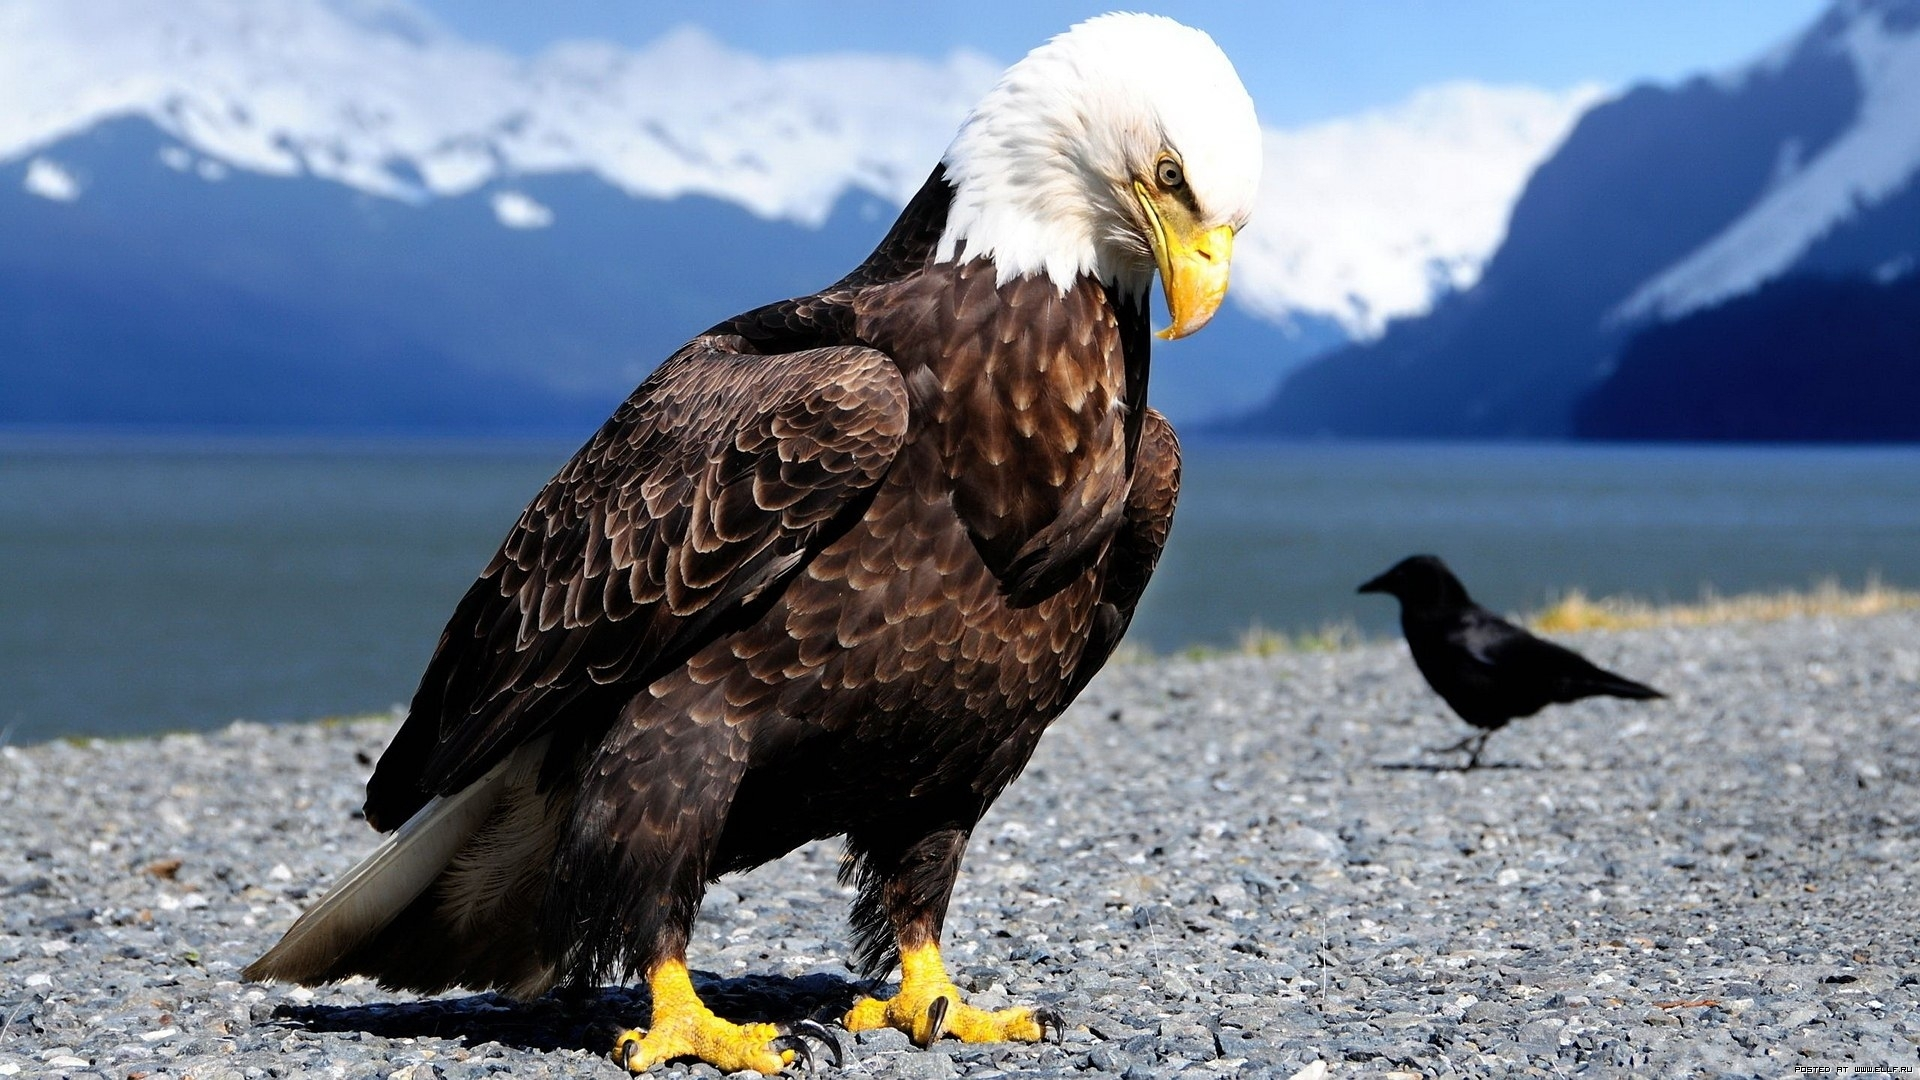 50274 download wallpaper Animals, Birds, Eagles screensavers and pictures for free